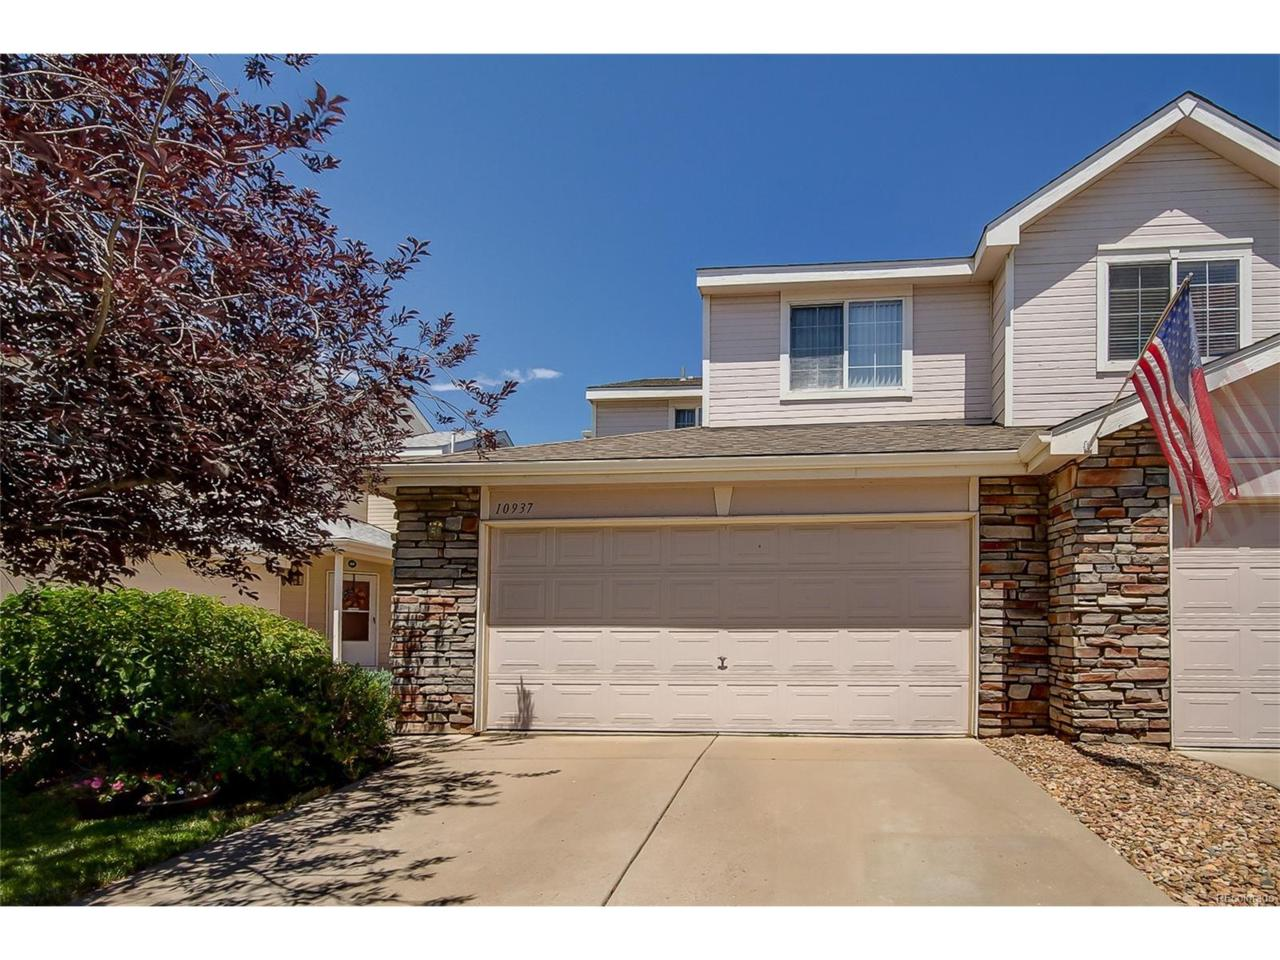 10937 E 96th Place, Commerce City, CO 80022 (MLS #3910298) :: 8z Real Estate